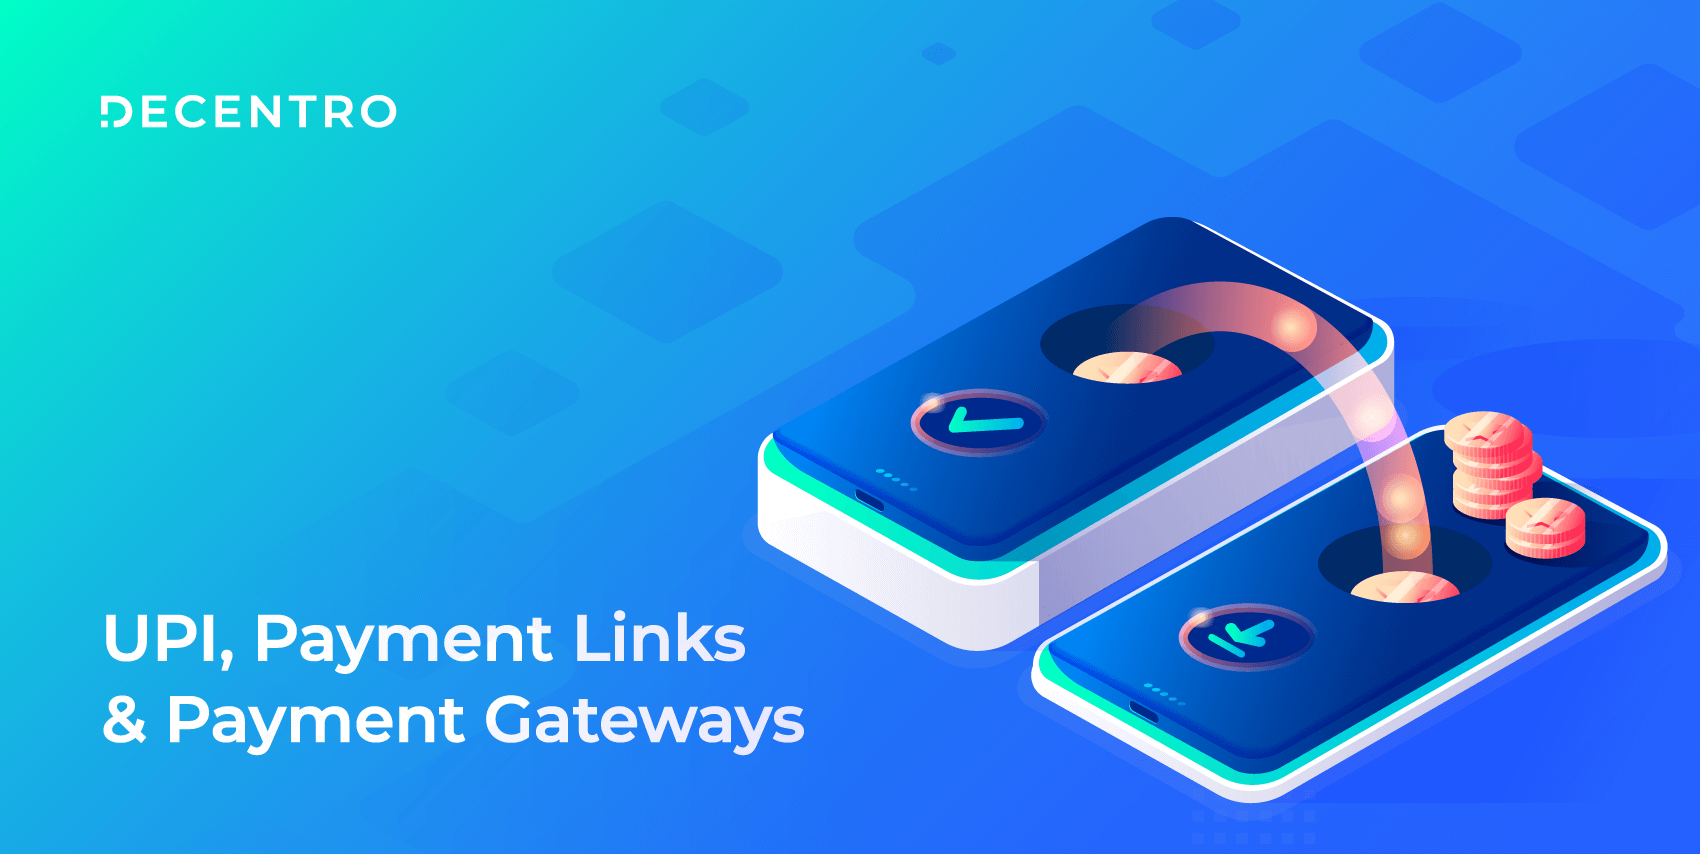 A detailed study about UPI & Payment links win over payment gateways.